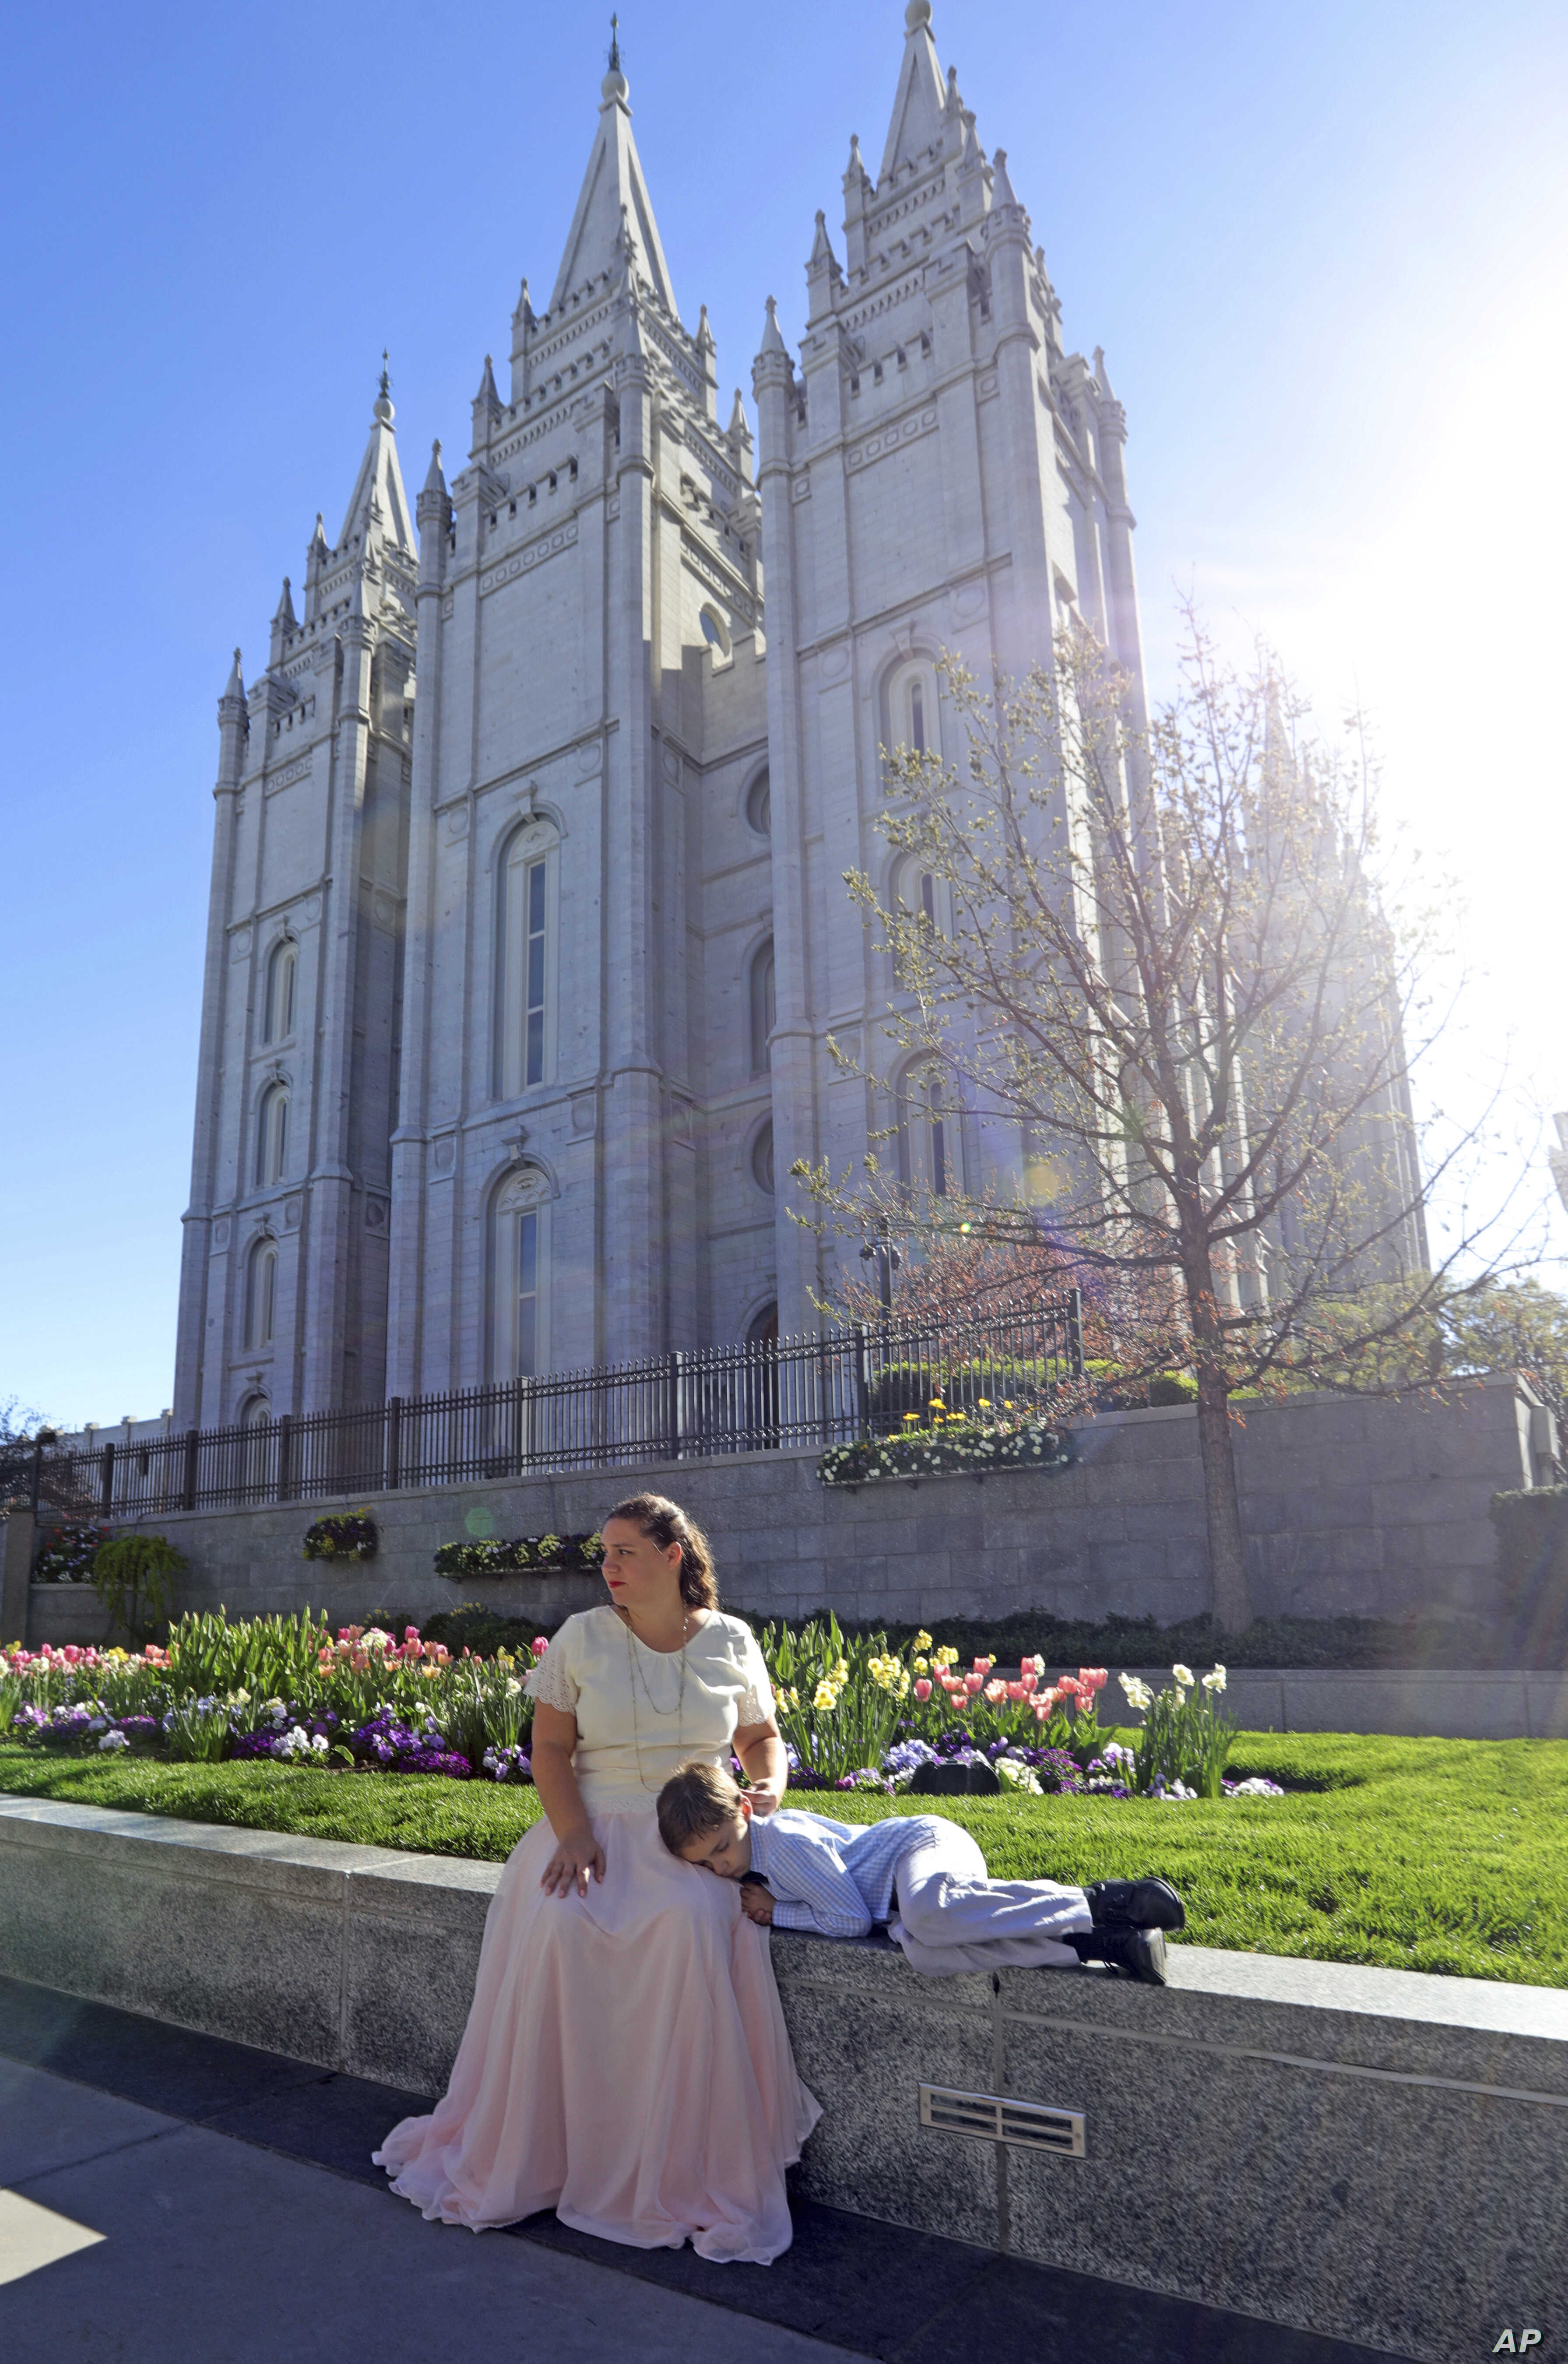 Salt Lake Temple is shown April 19, 2019, in Salt Lake City. The iconic temple central to The Church of Jesus Christ of Latter-day Saints faith will close for four years to complete a major renovation.